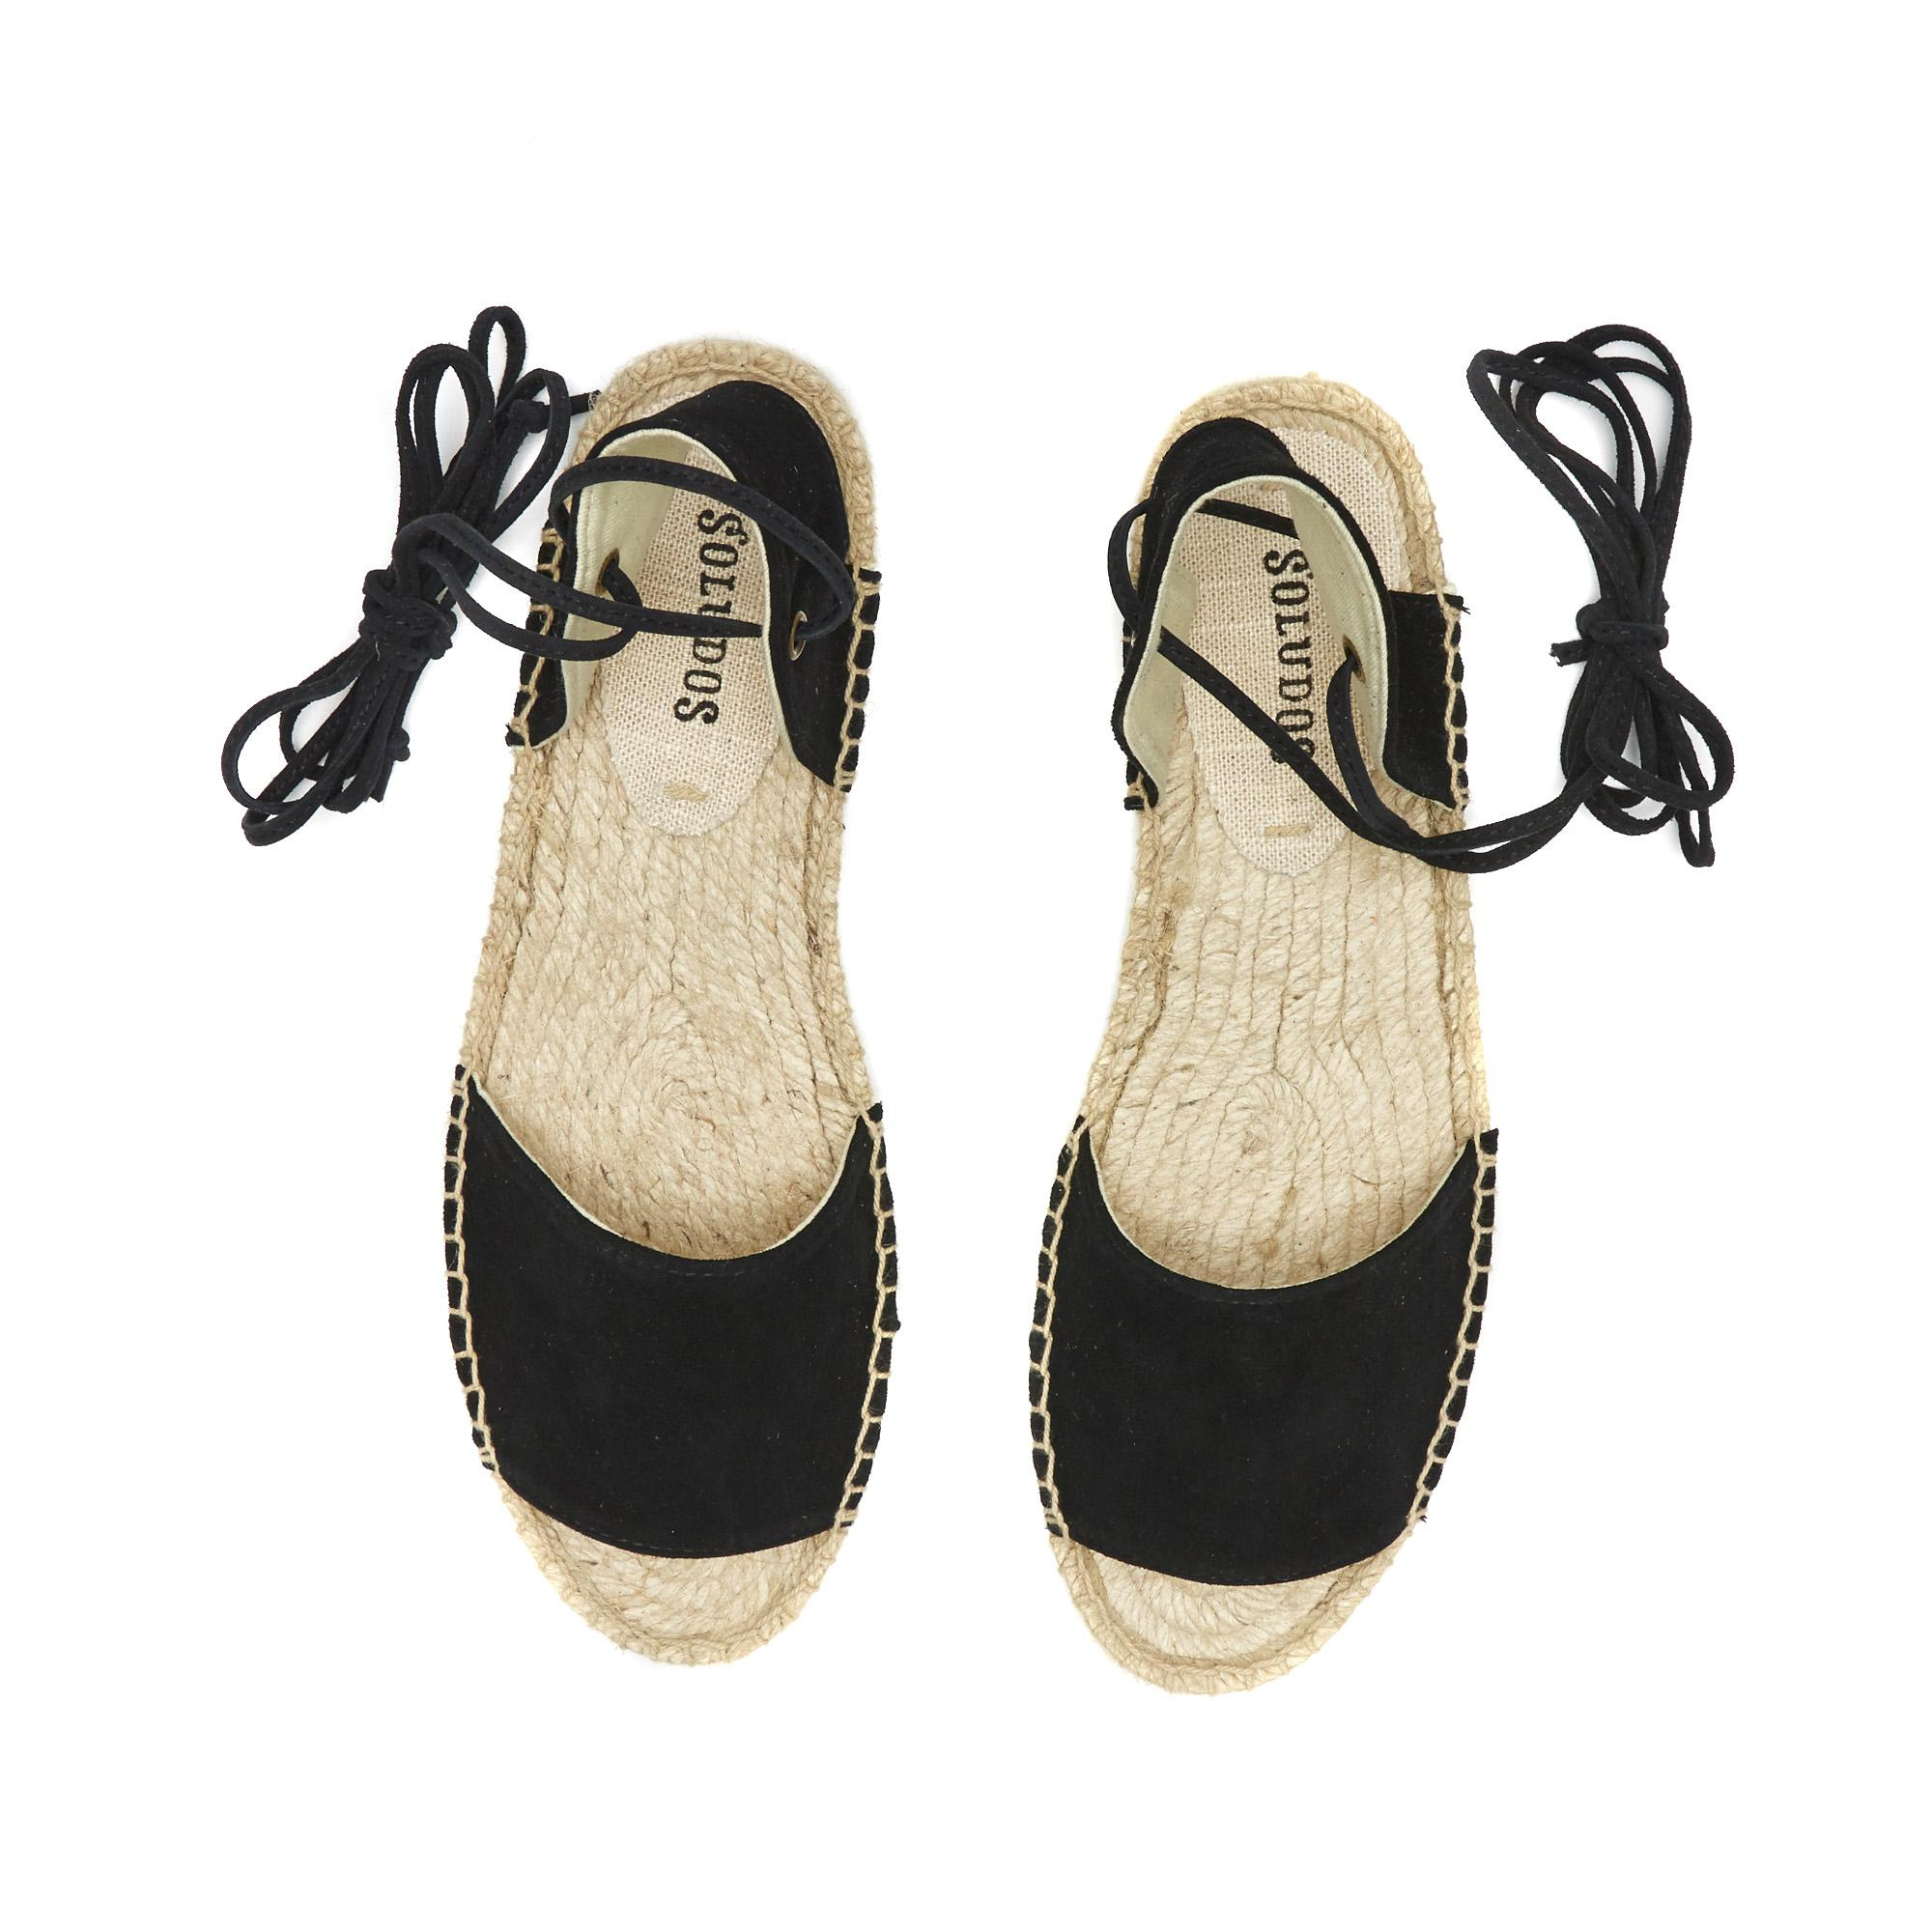 9542177dd7a9 Lyst - Soludos Suede Balearic Tie-up Sandal in Black